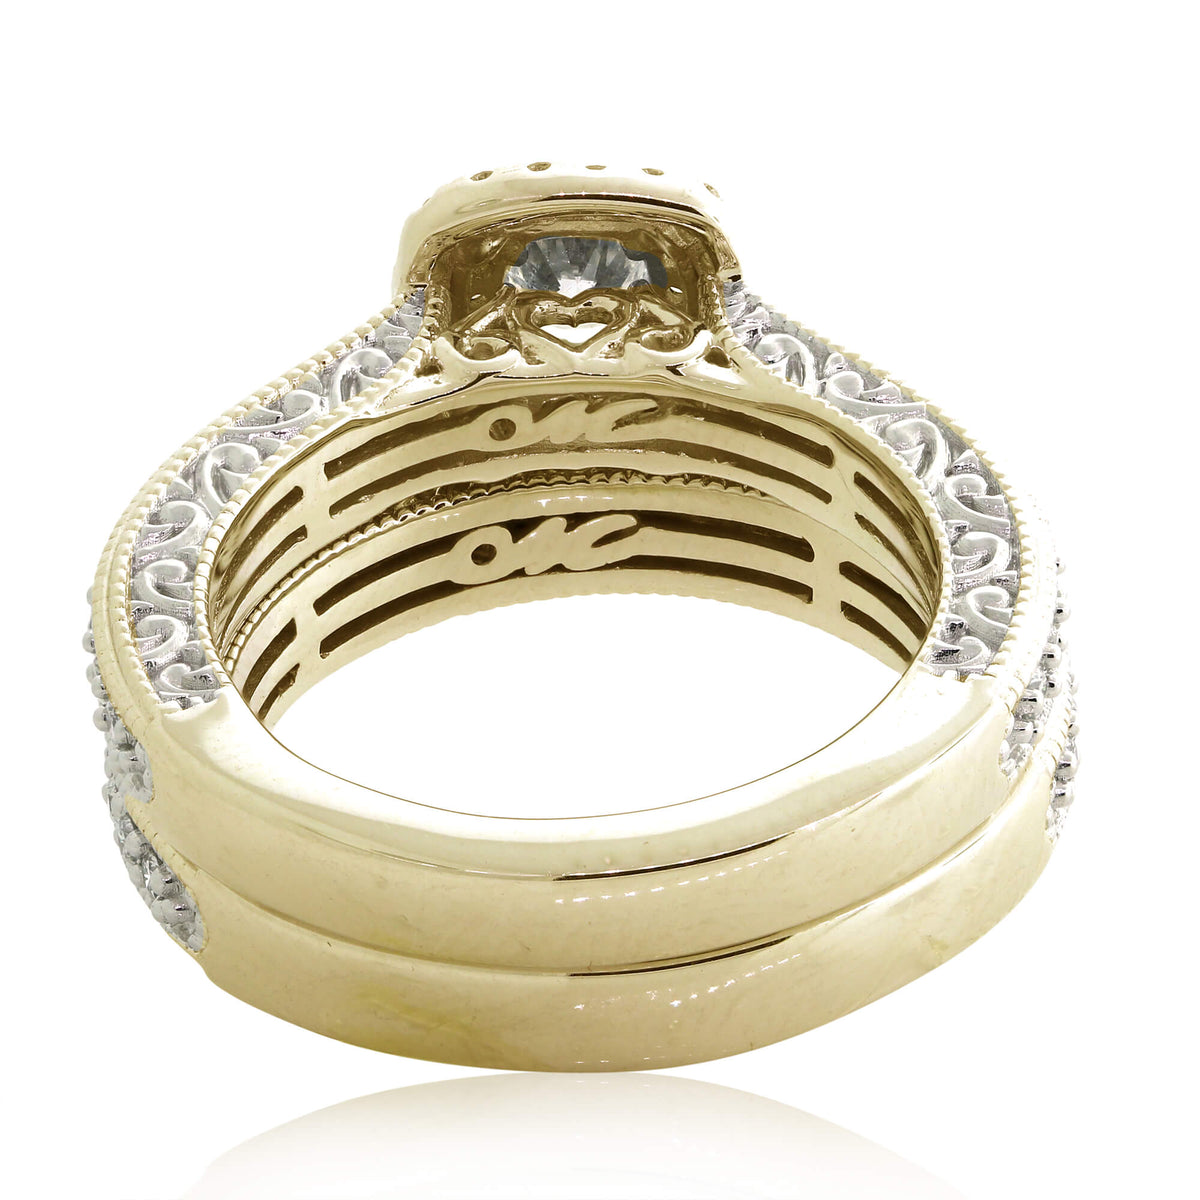 Miché Collection 0.96 Ct Vintage Diamond Halo Engagement Set in 14k Gold